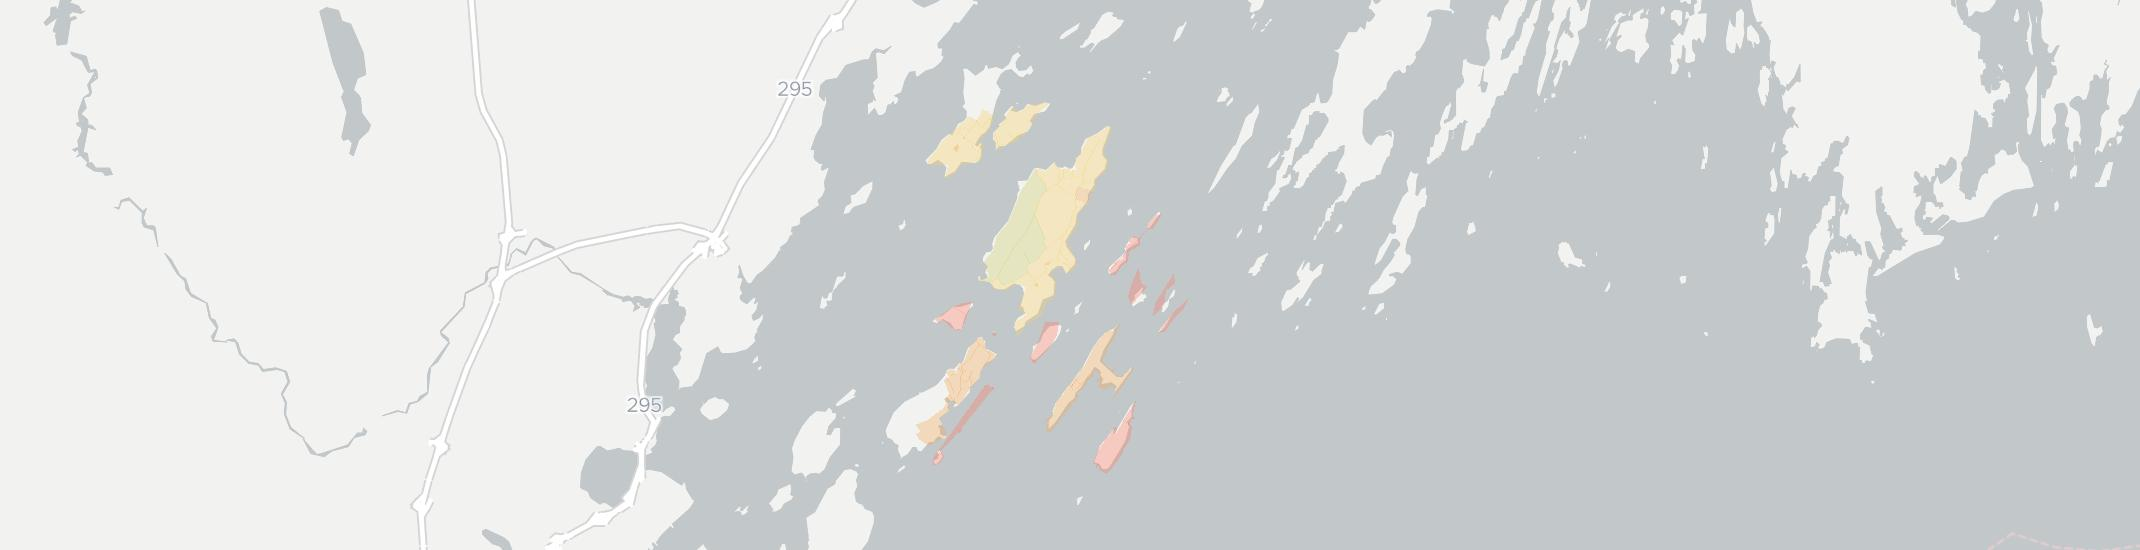 Chebeague Island Internet Competition Map. Click for interactive map.